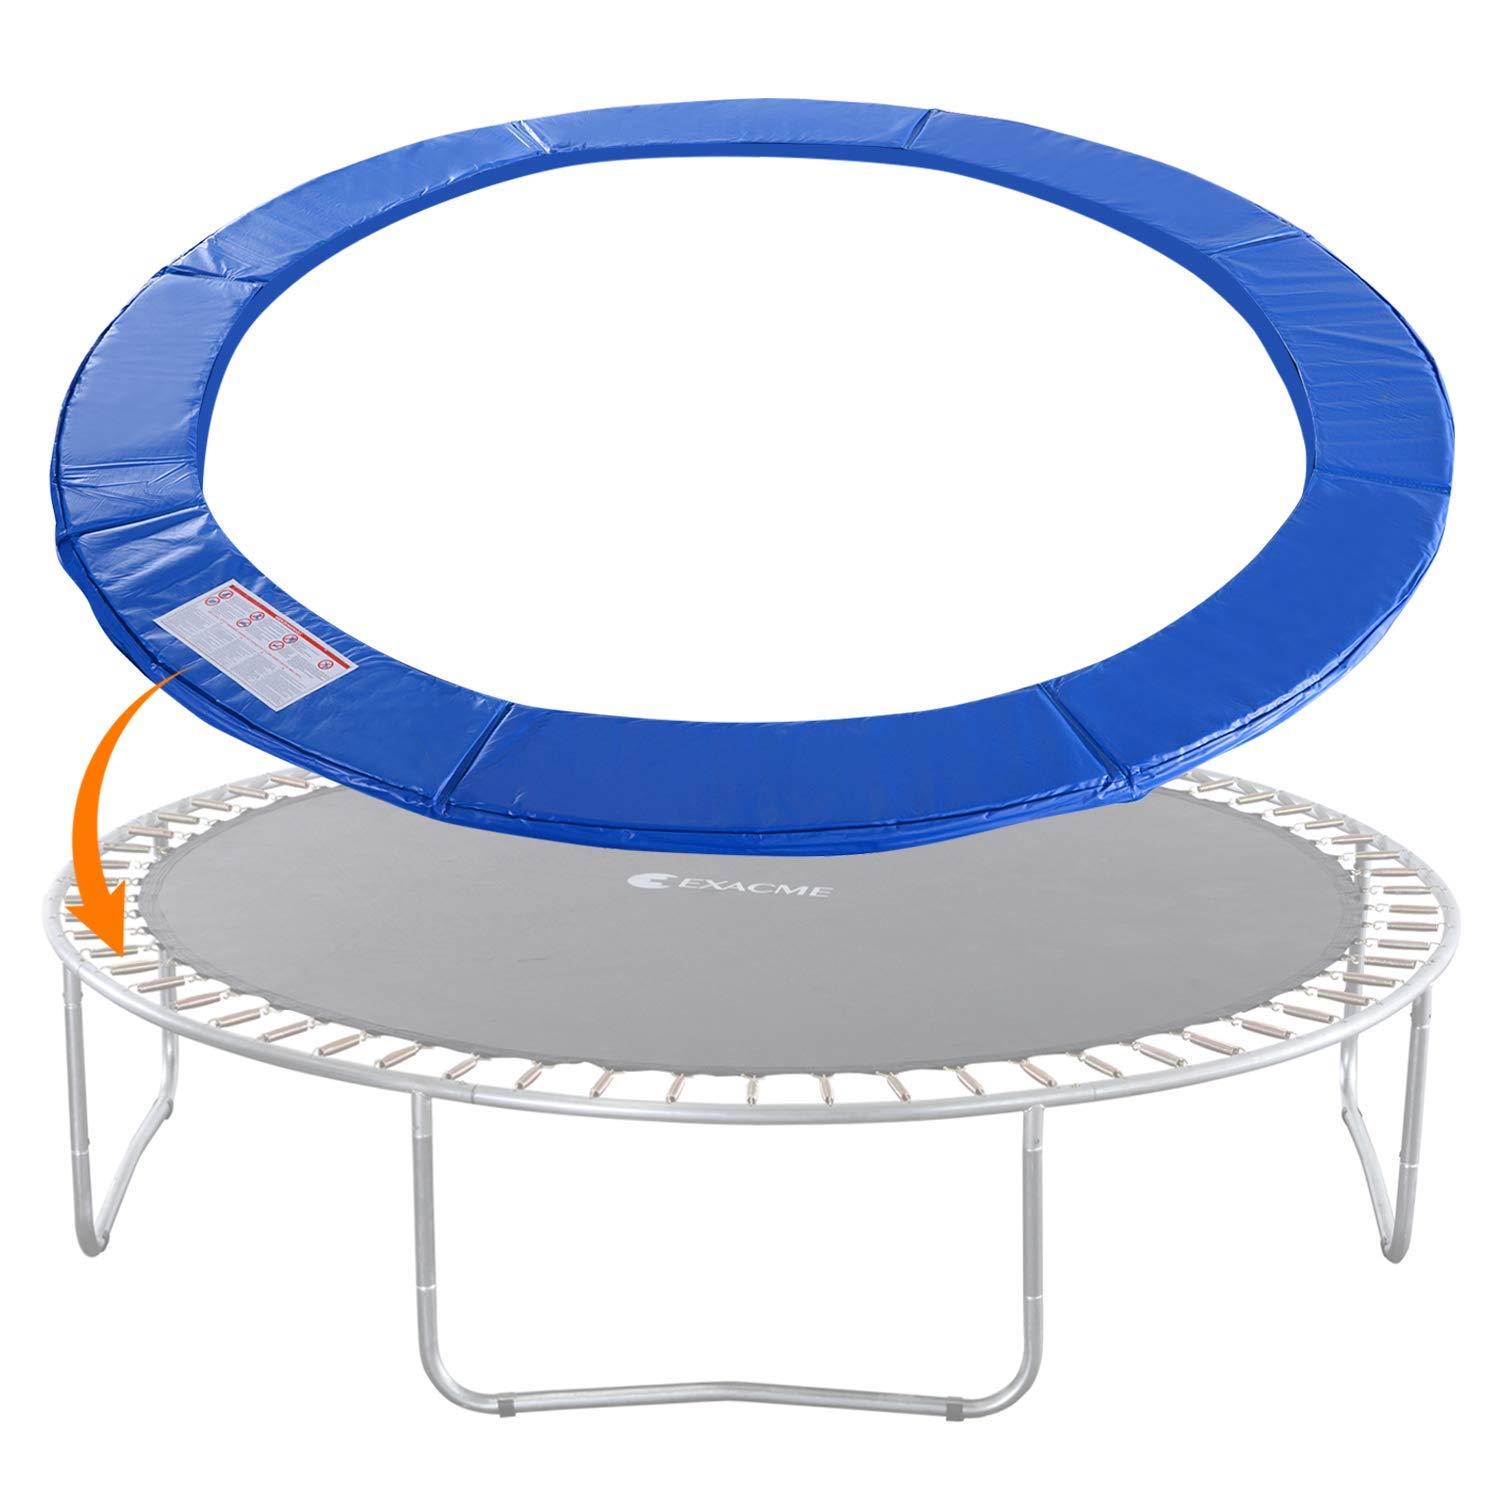 Exacme Trampoline Replacement Safety Pad Round Spring Cover, No Slots (Blue, 16 Foot) (Renewed) by Exacme